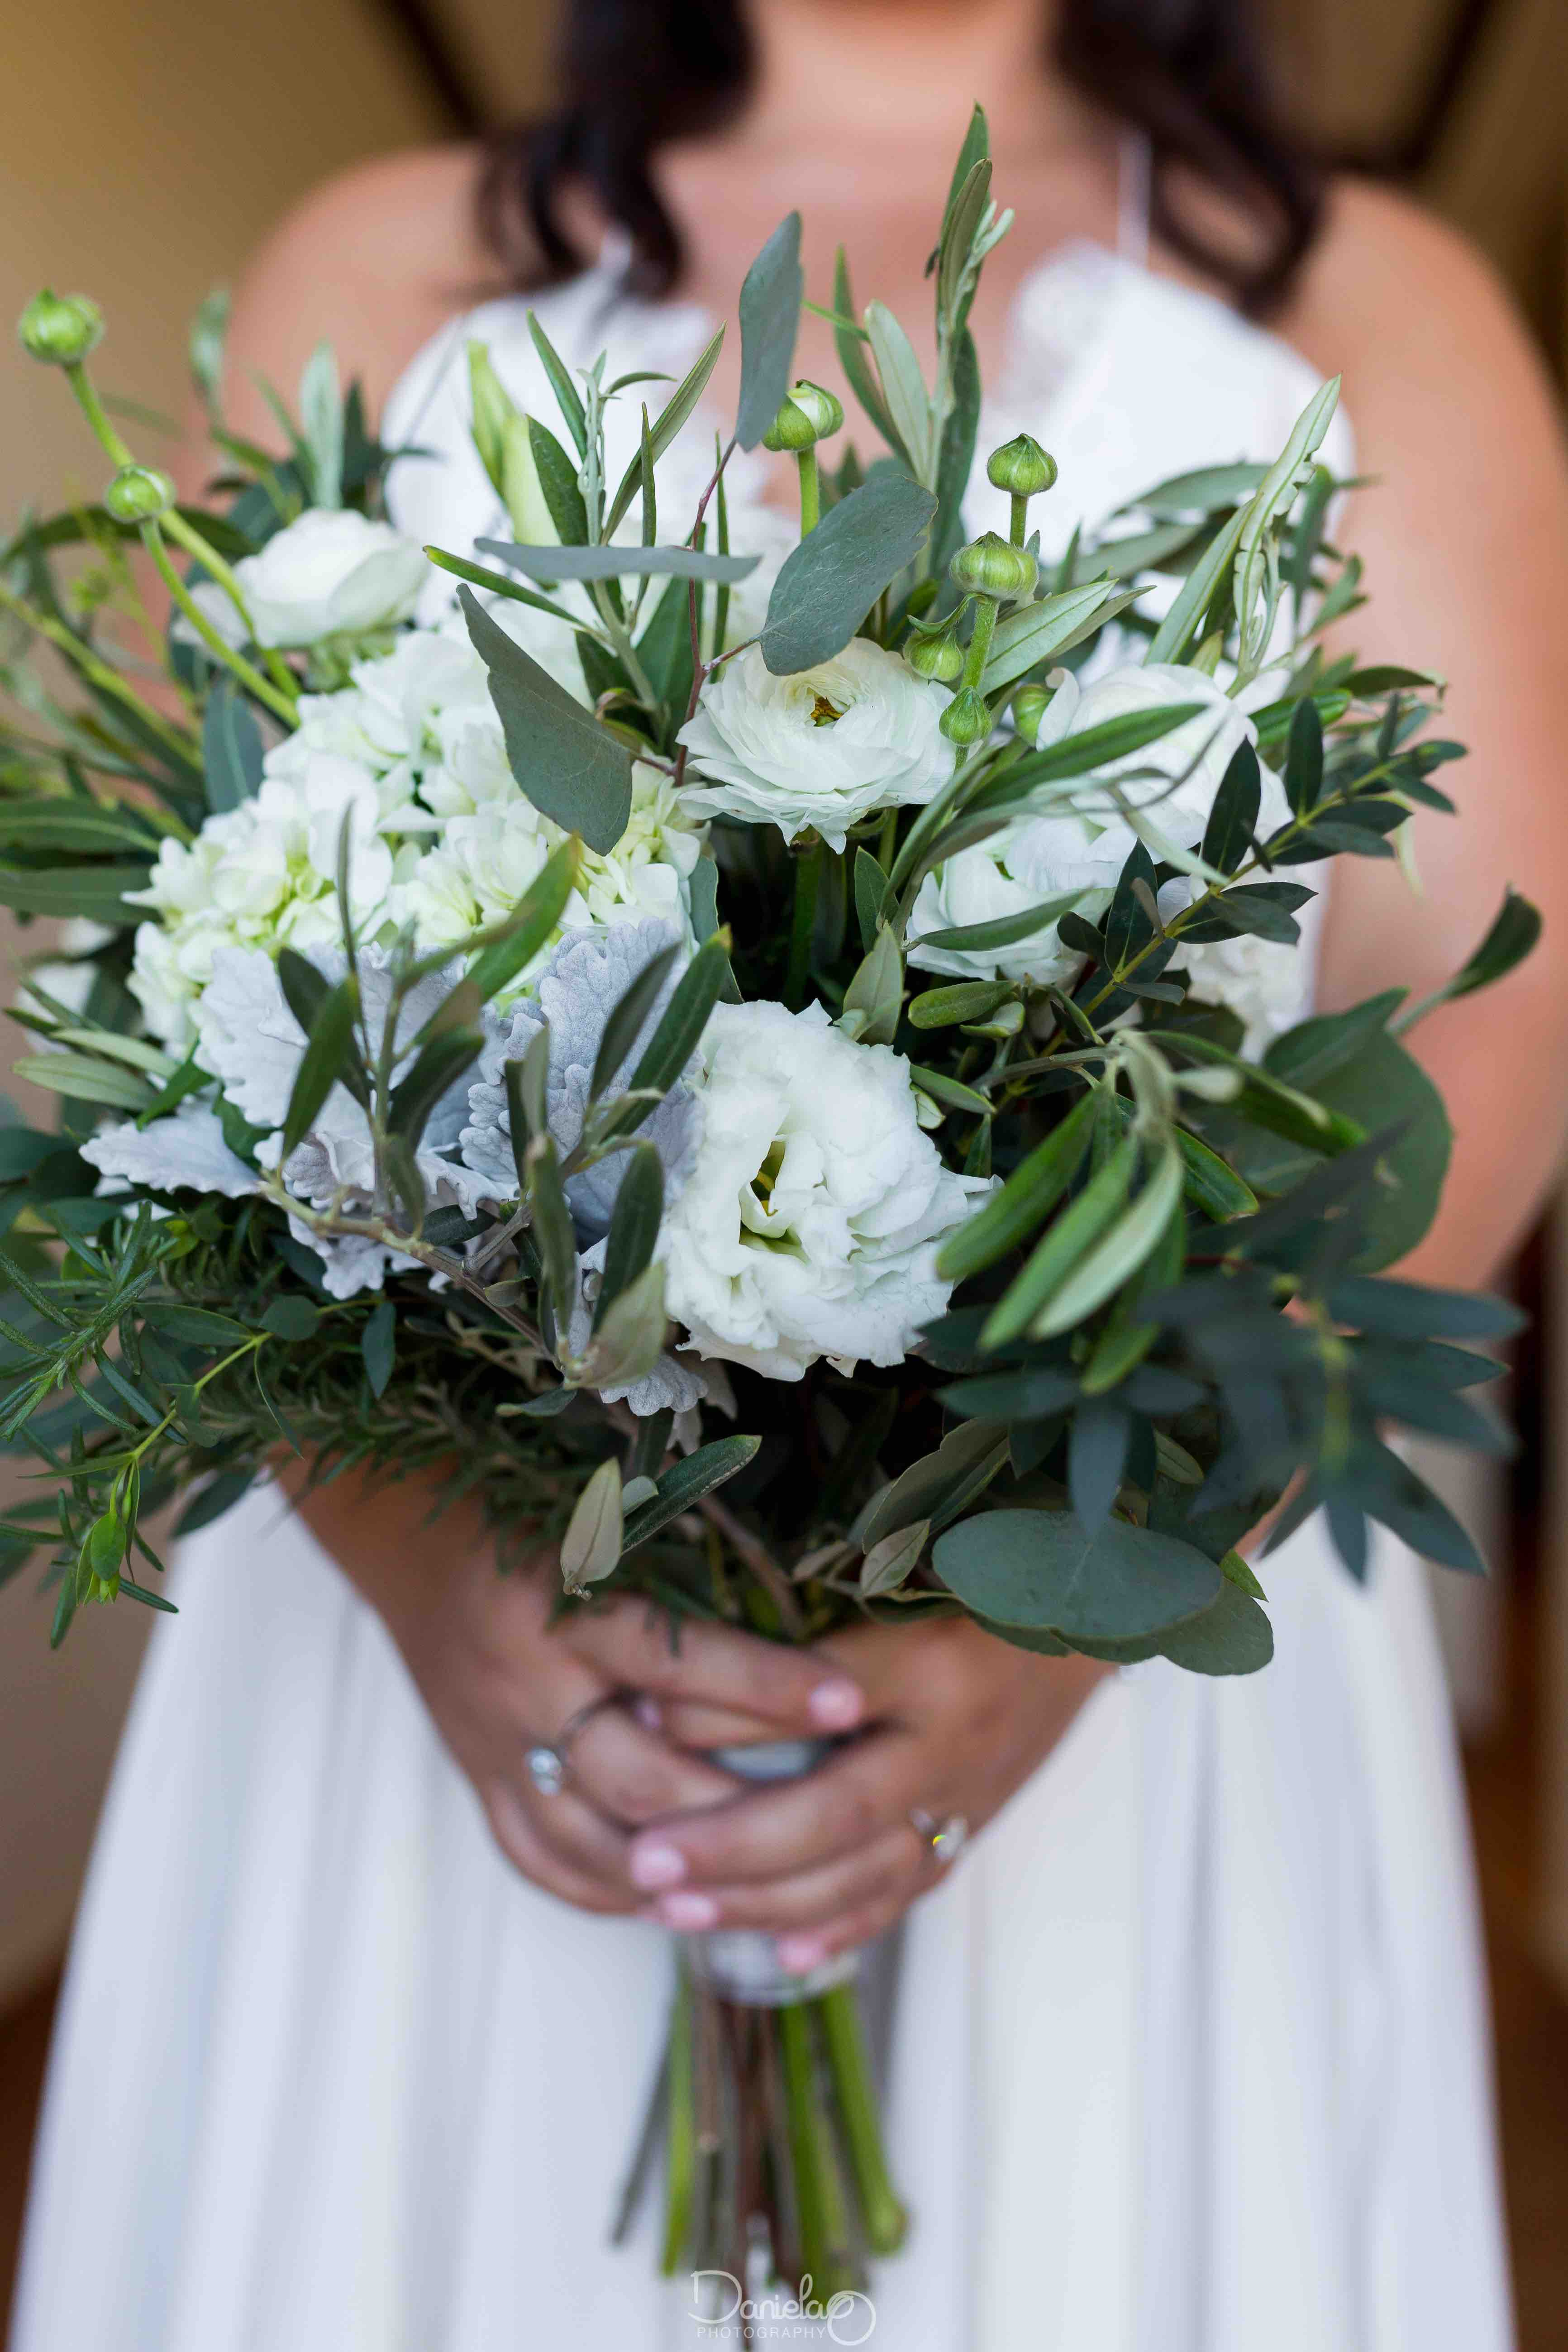 Cabo flowers and cakes the cabo floral and cake experts our beautiful bride ellie knew exactly what she wanted her bouquet to look likenatural leafy green white only and very fresh and romantic izmirmasajfo